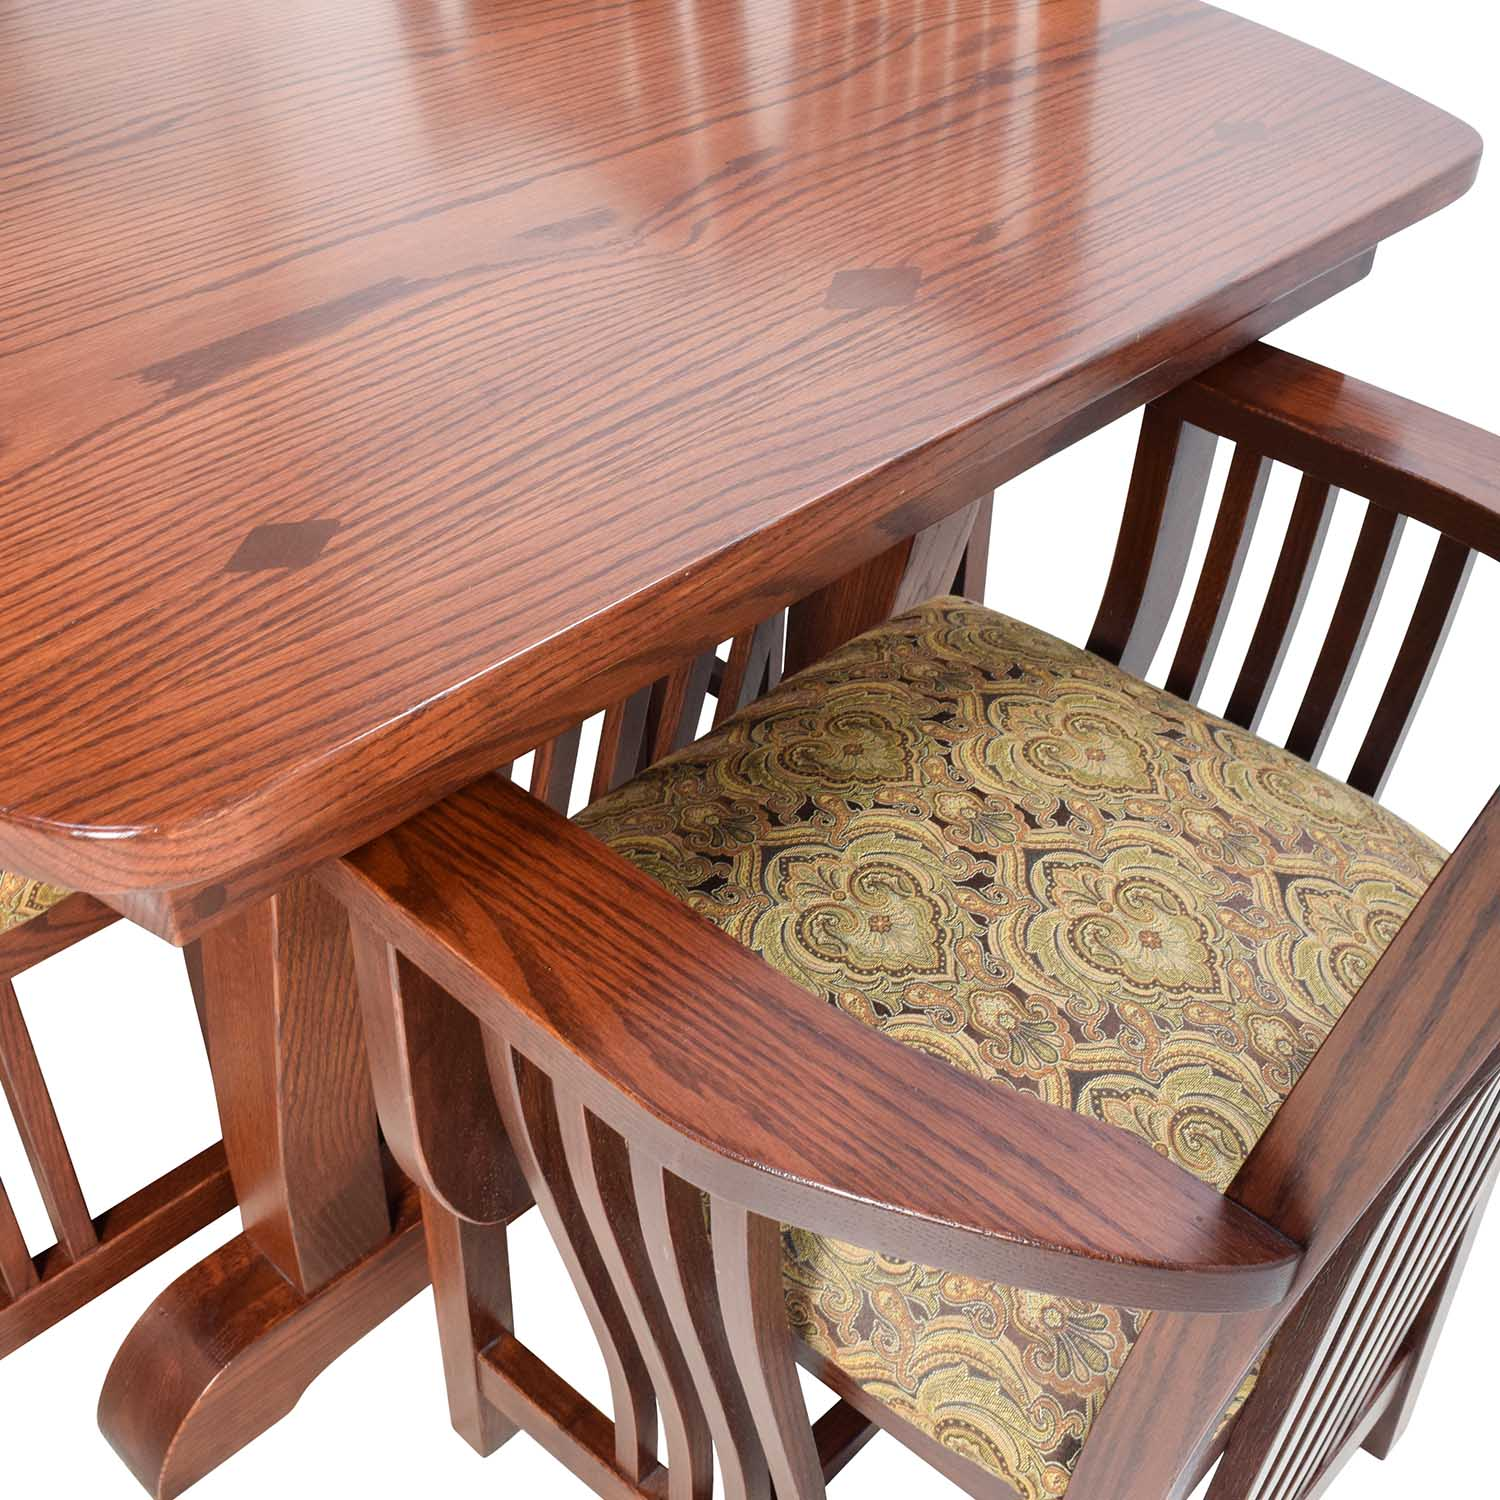 Homestead Furniture Homestead Furniture Classic Mission Solid Oak Dining Set nyc